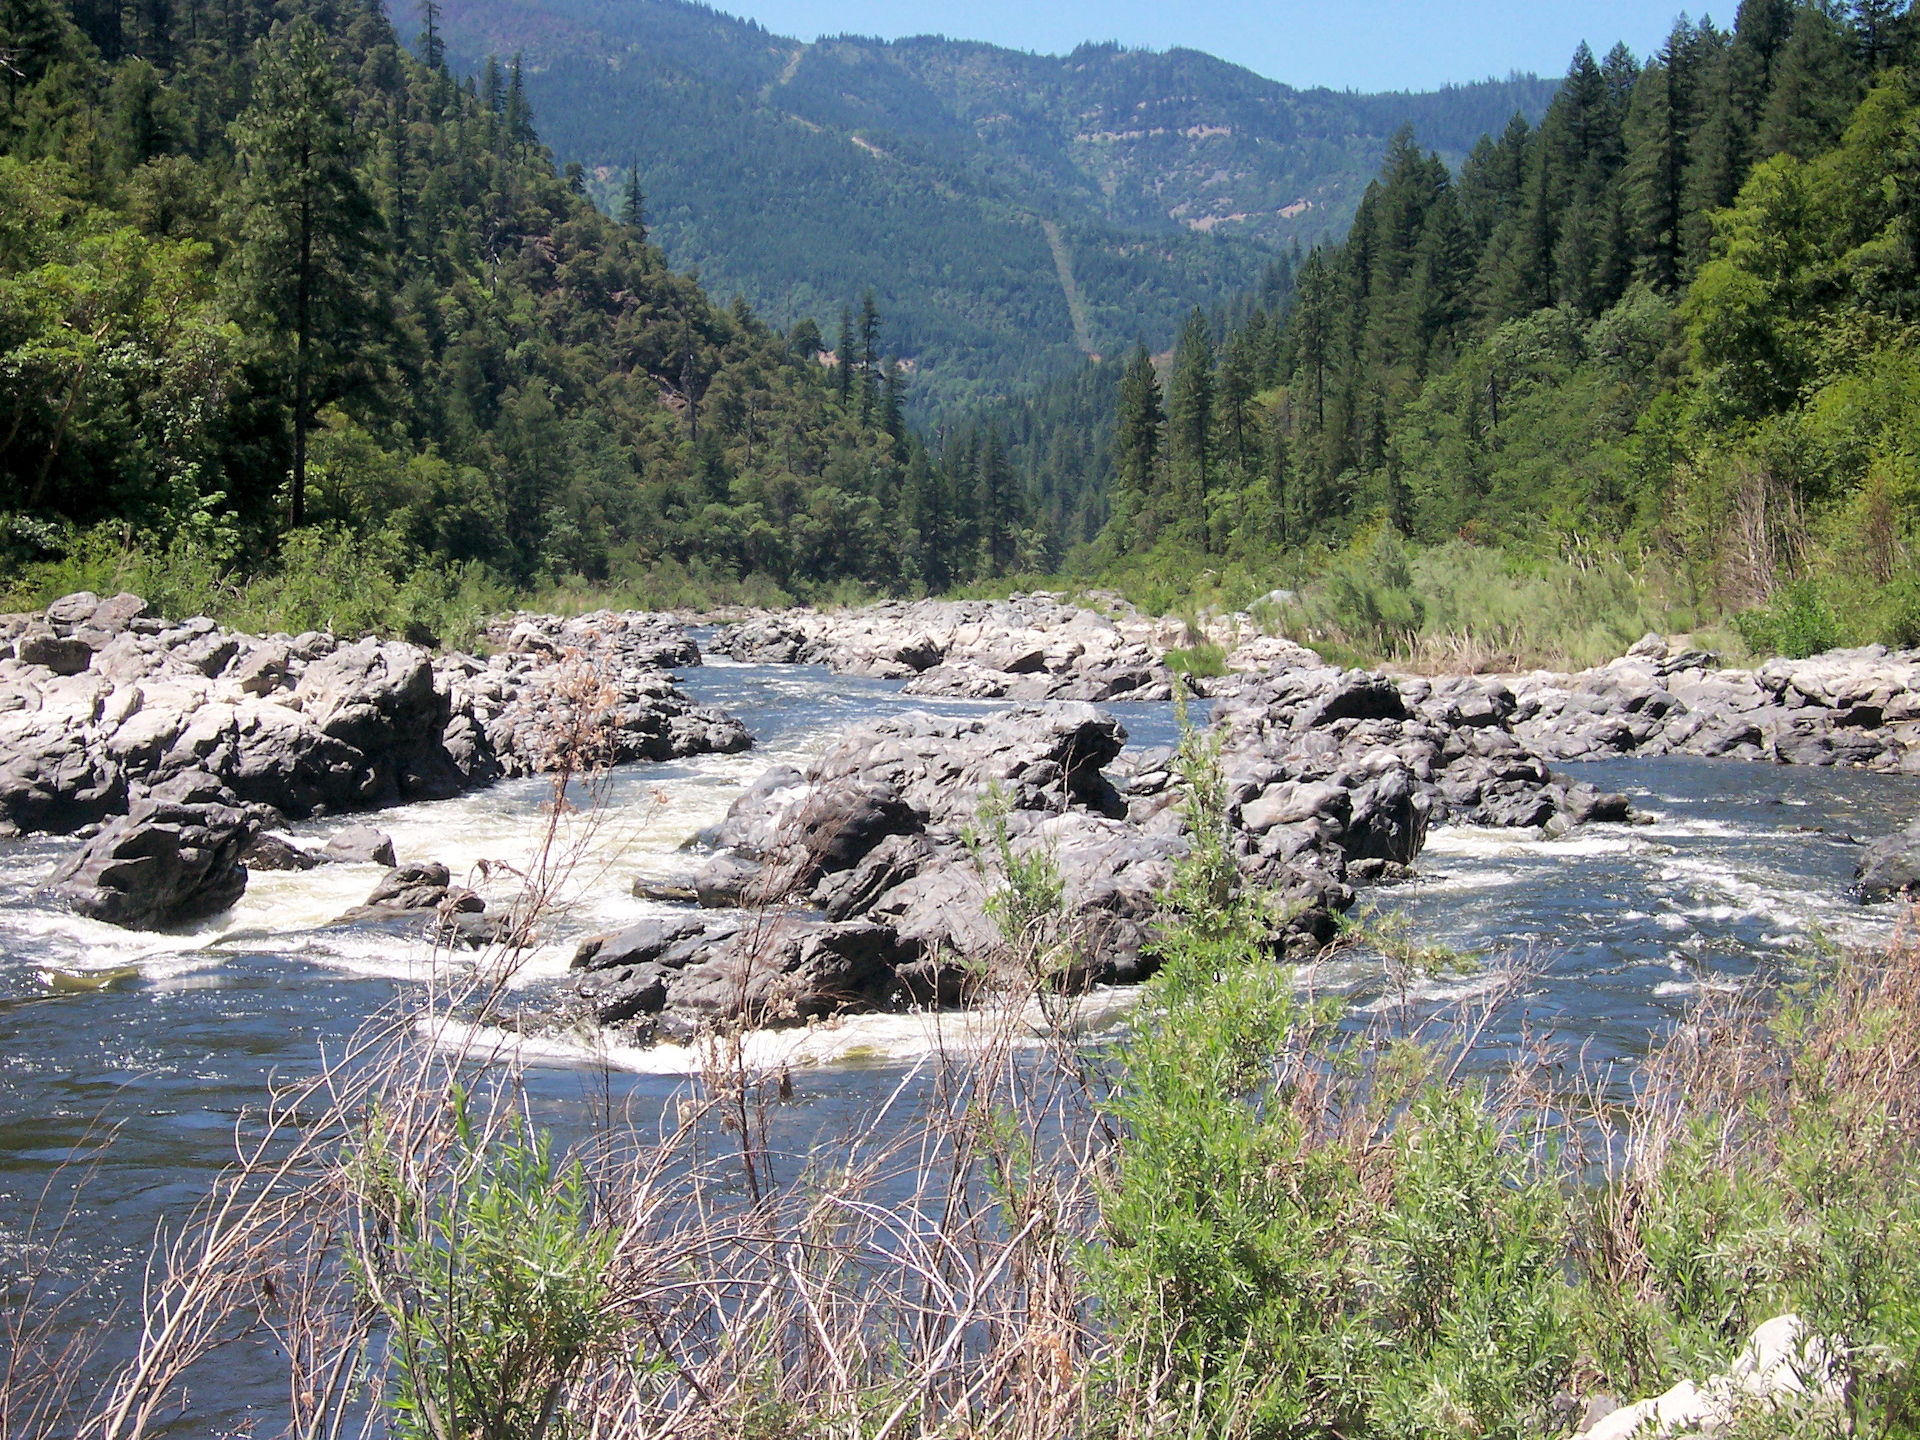 The Klamath River at Savage Rapids